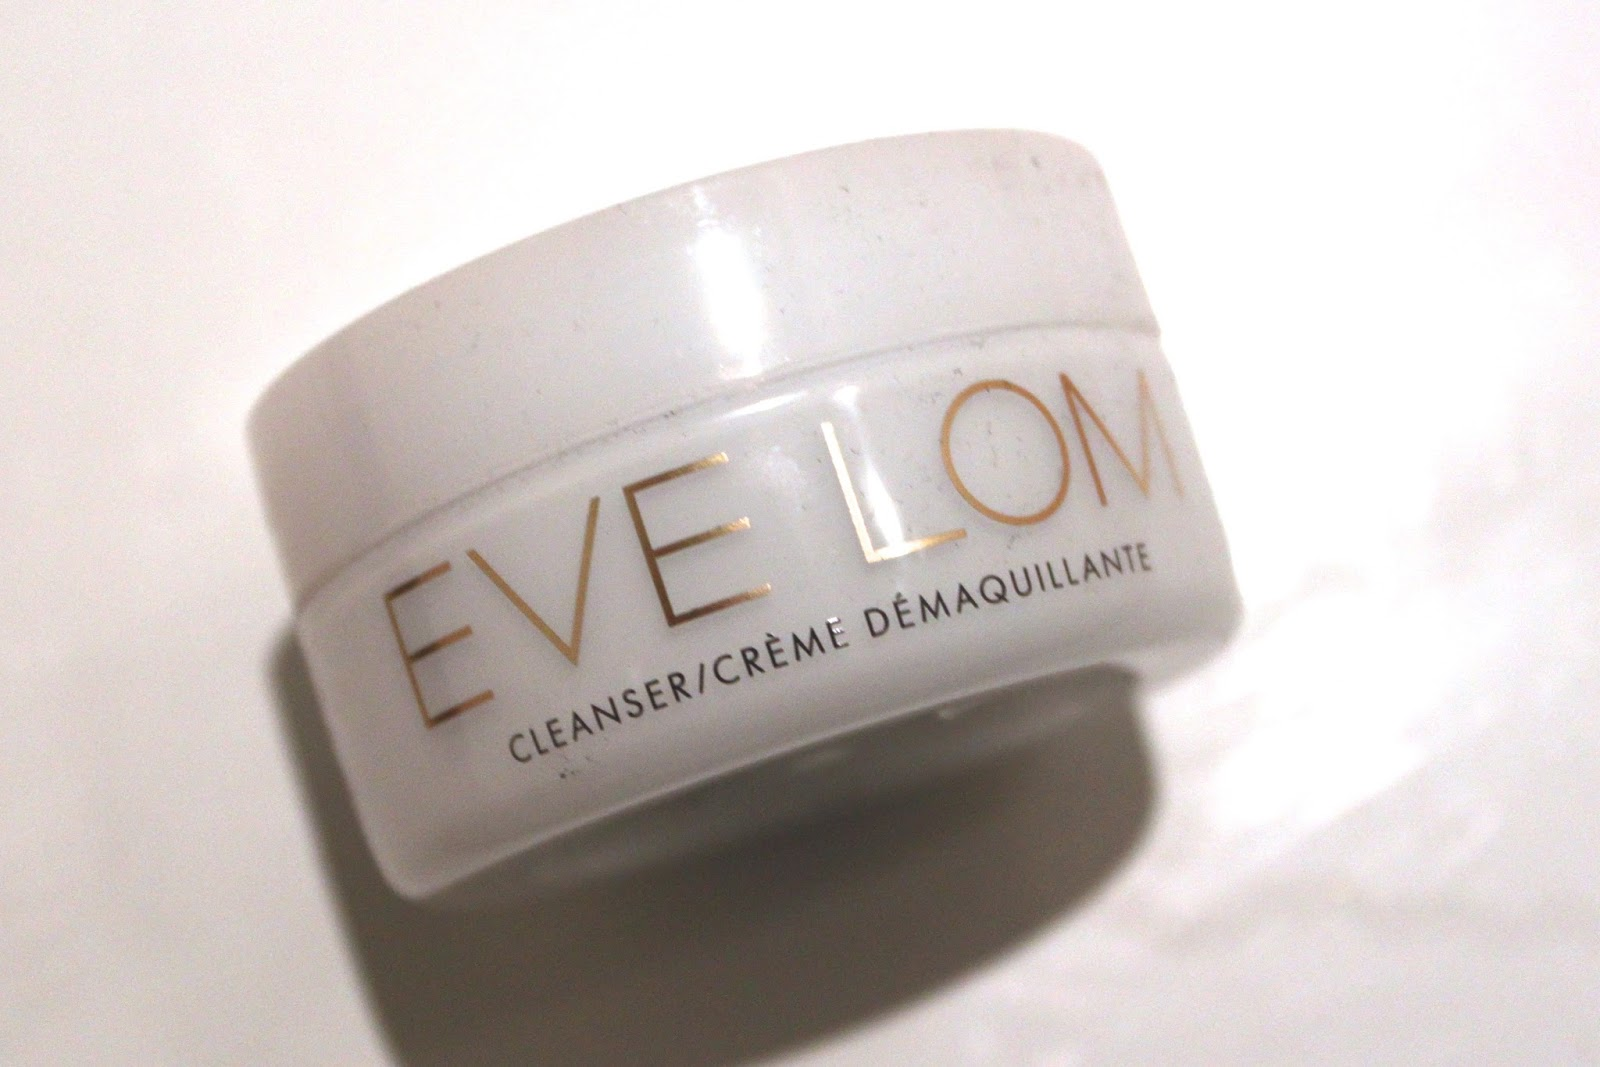 Jar of Eve Lom Cleanser